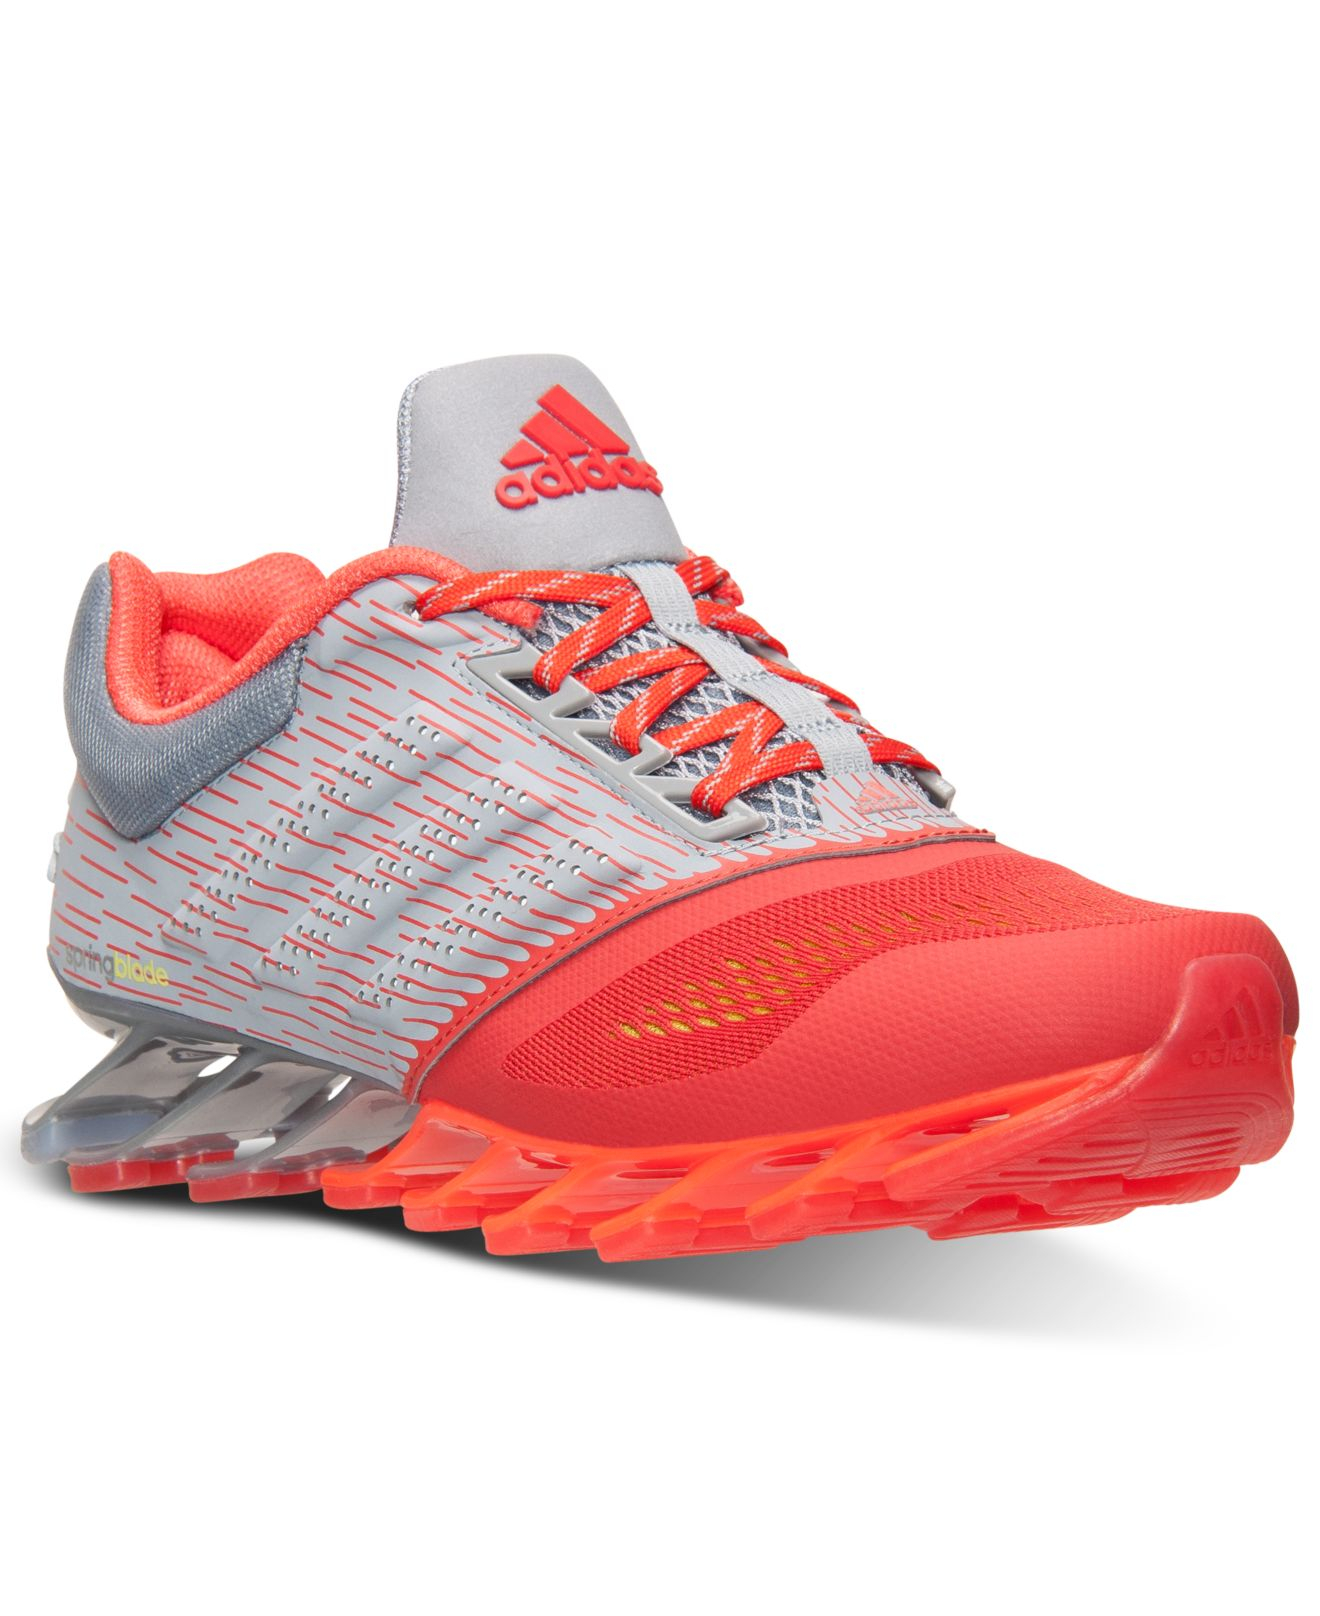 promo code 10301 05ebd ... switzerland lyst adidas mens springblade drive 2.0 running sneakers  from cac5e 1cdc2